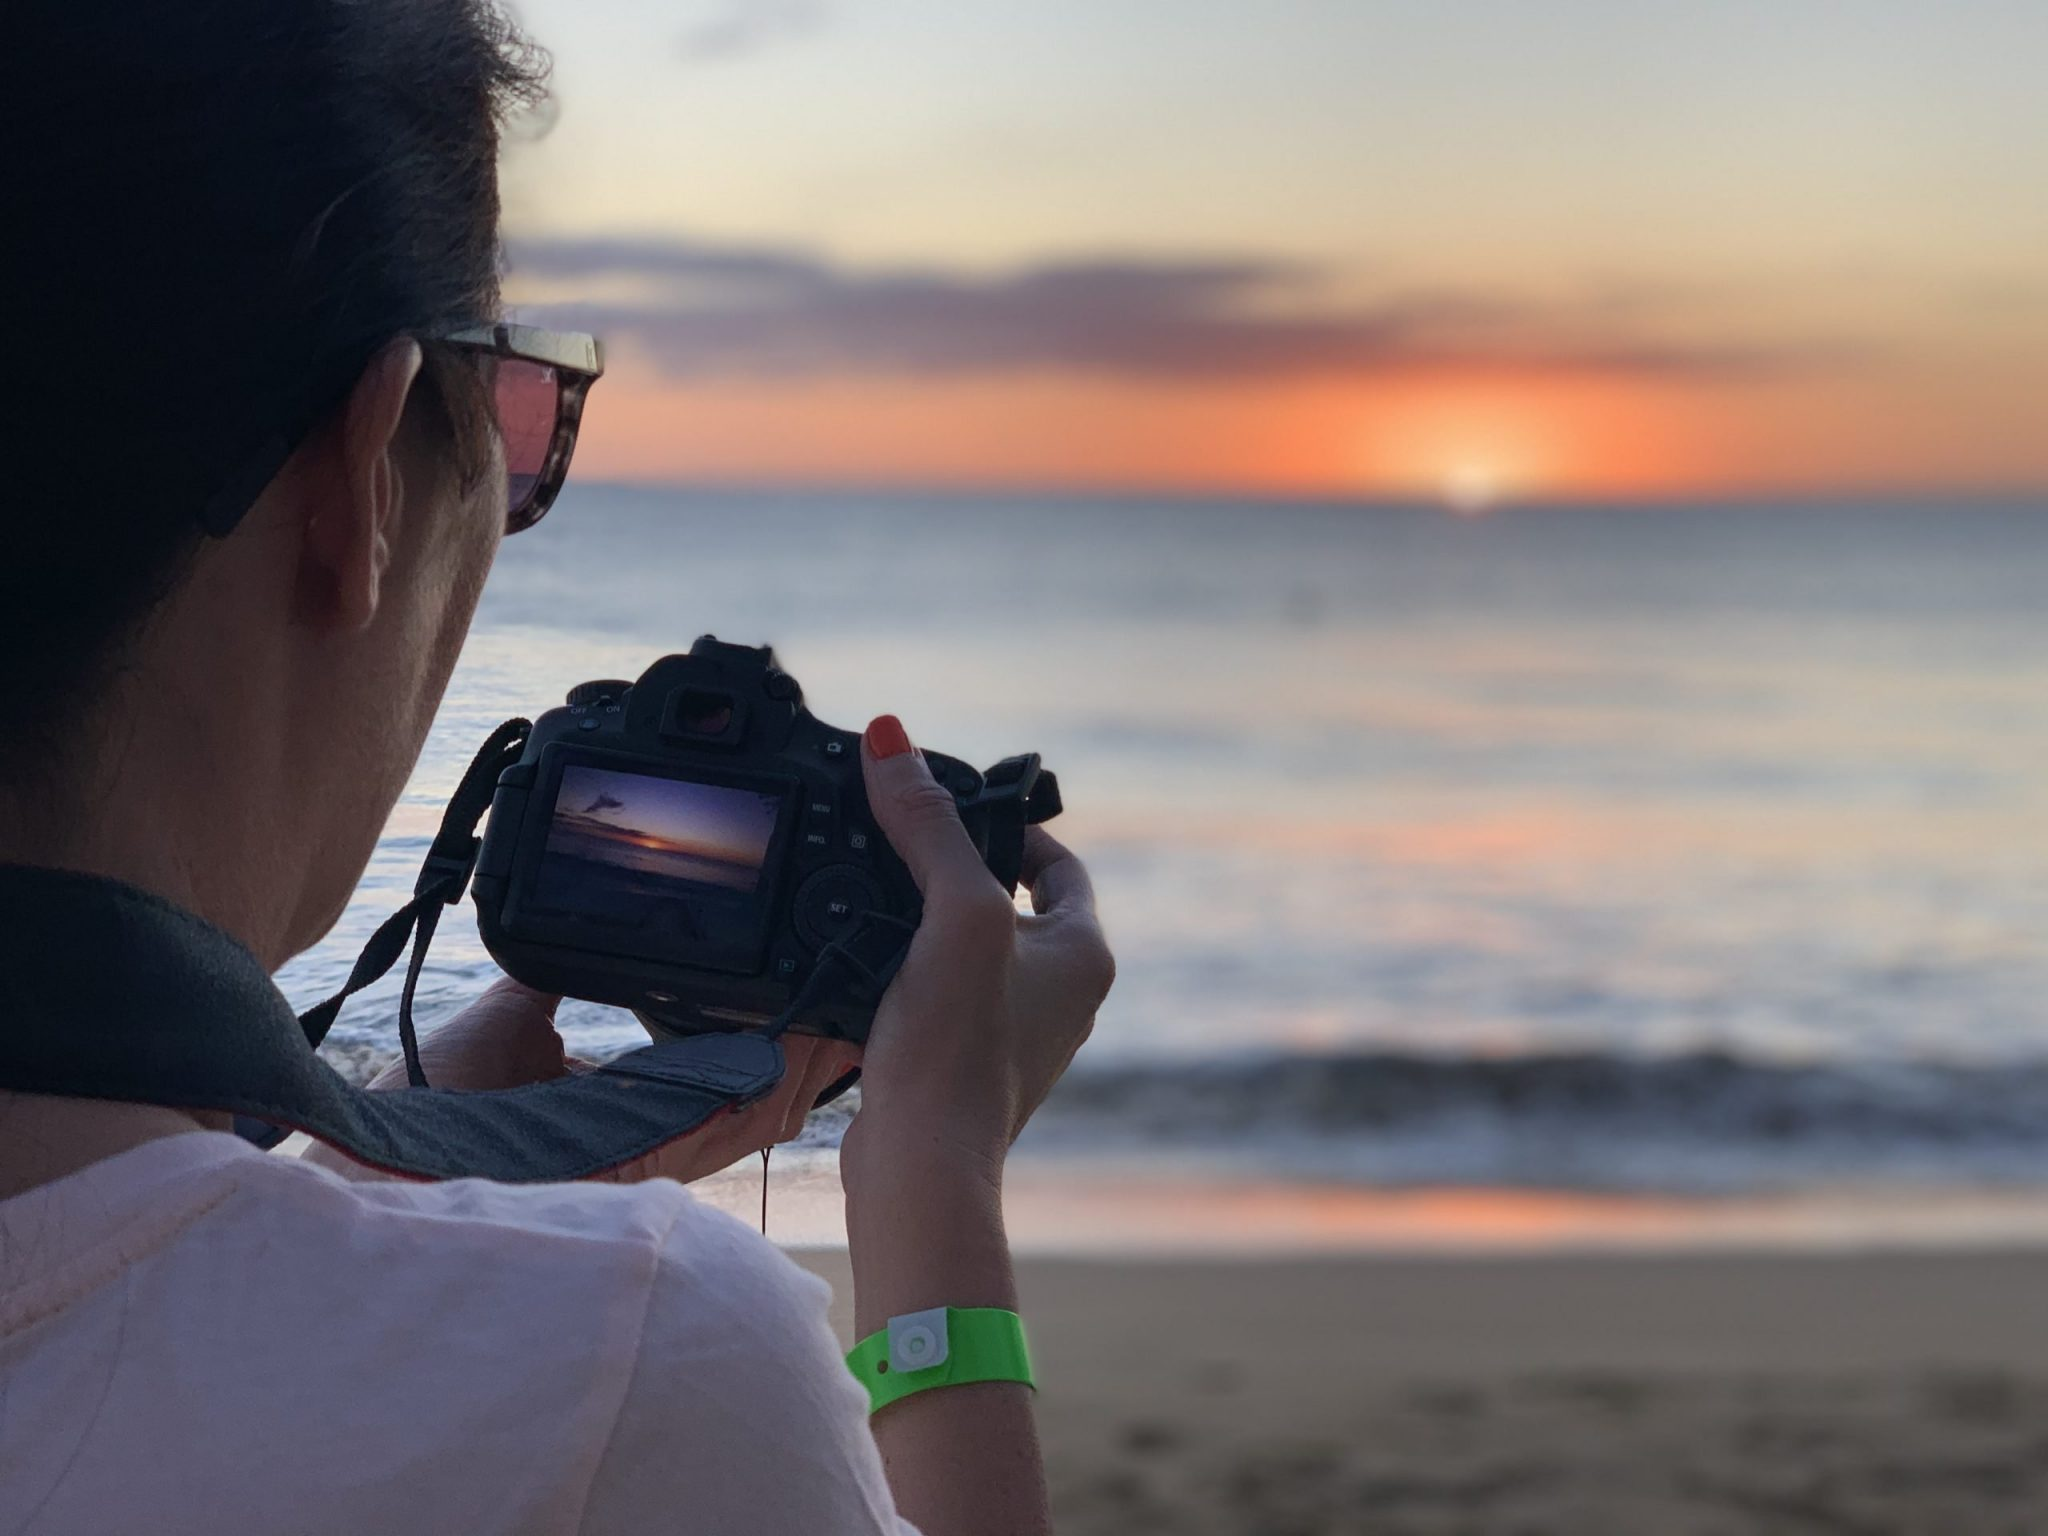 Leesa looking at a picture on a camera while at the beach in early 2020